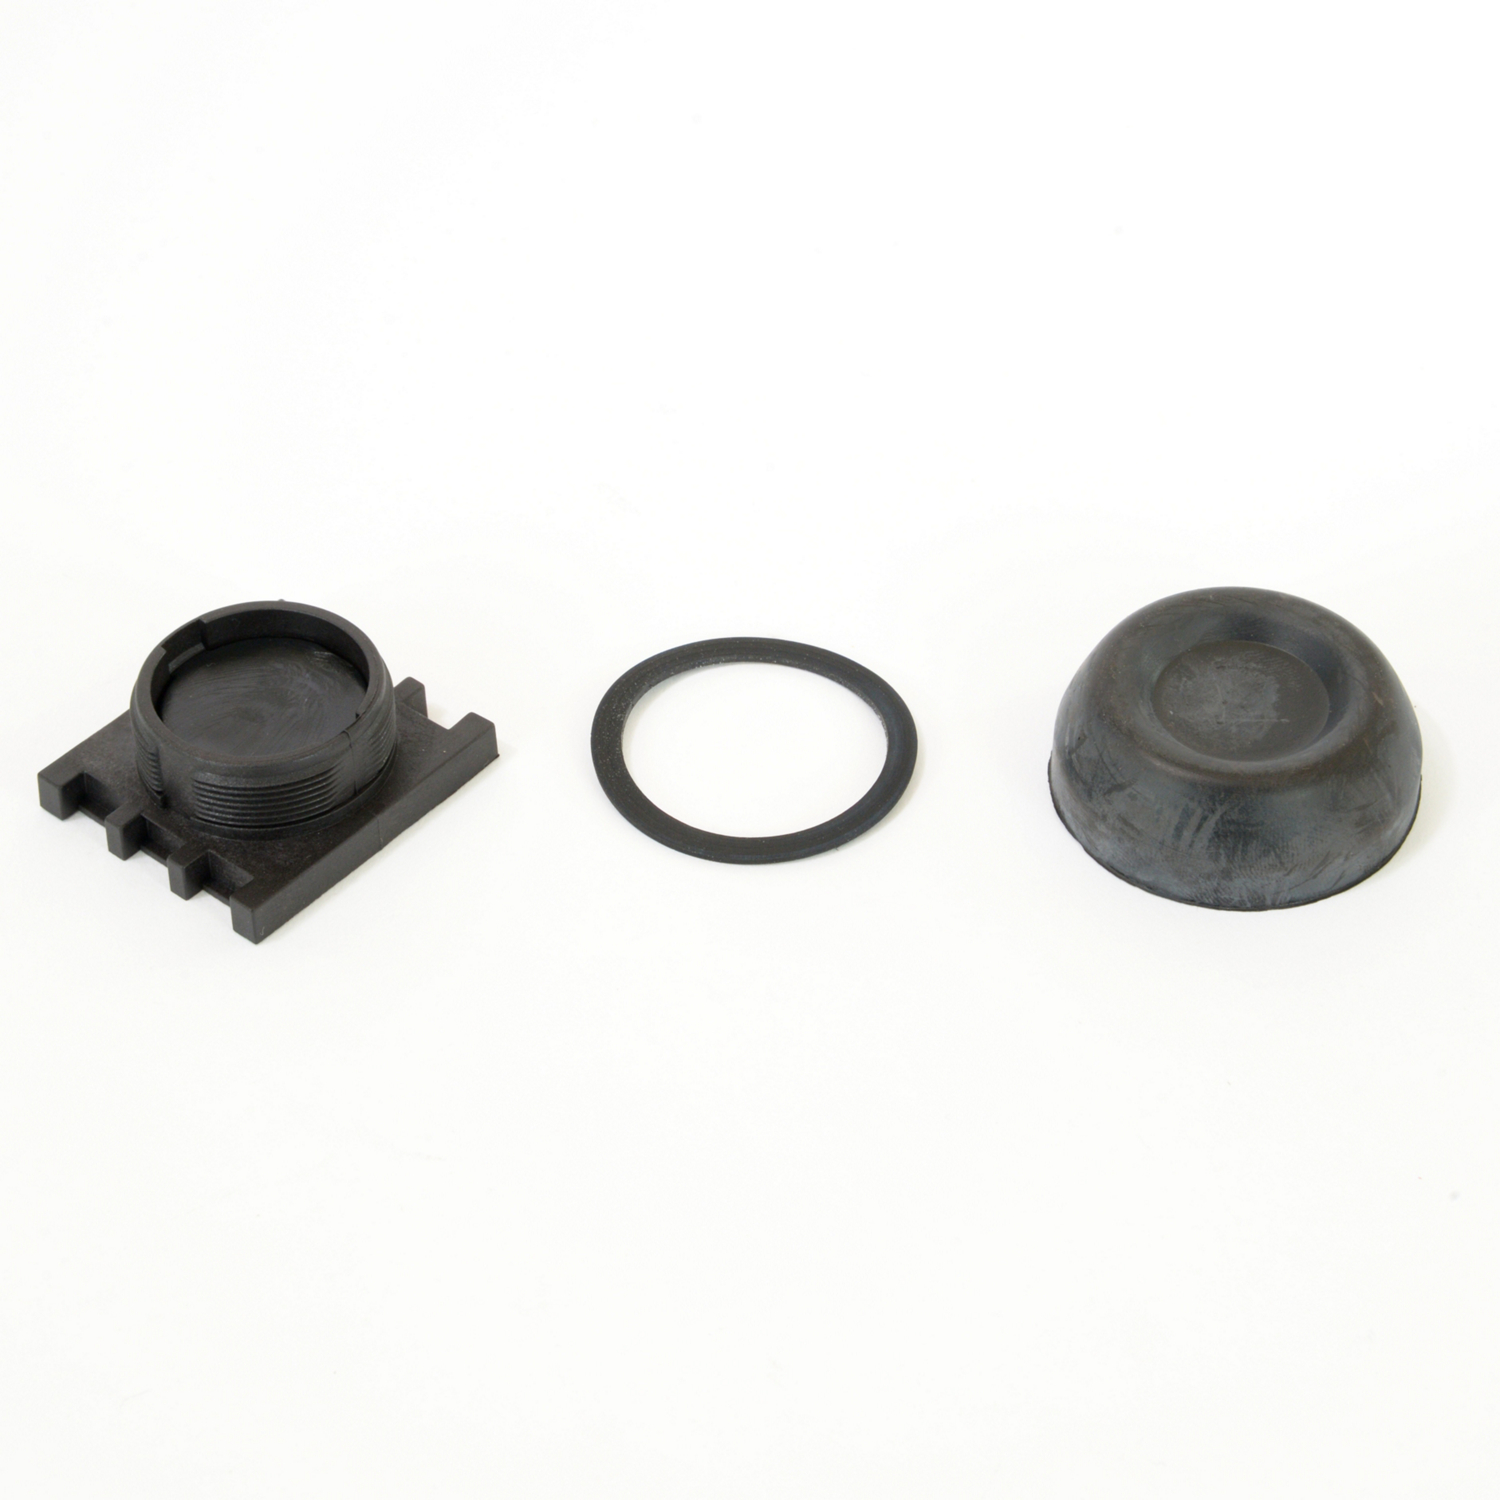 ABB KP6-40B Non-Illuminated Pushbutton